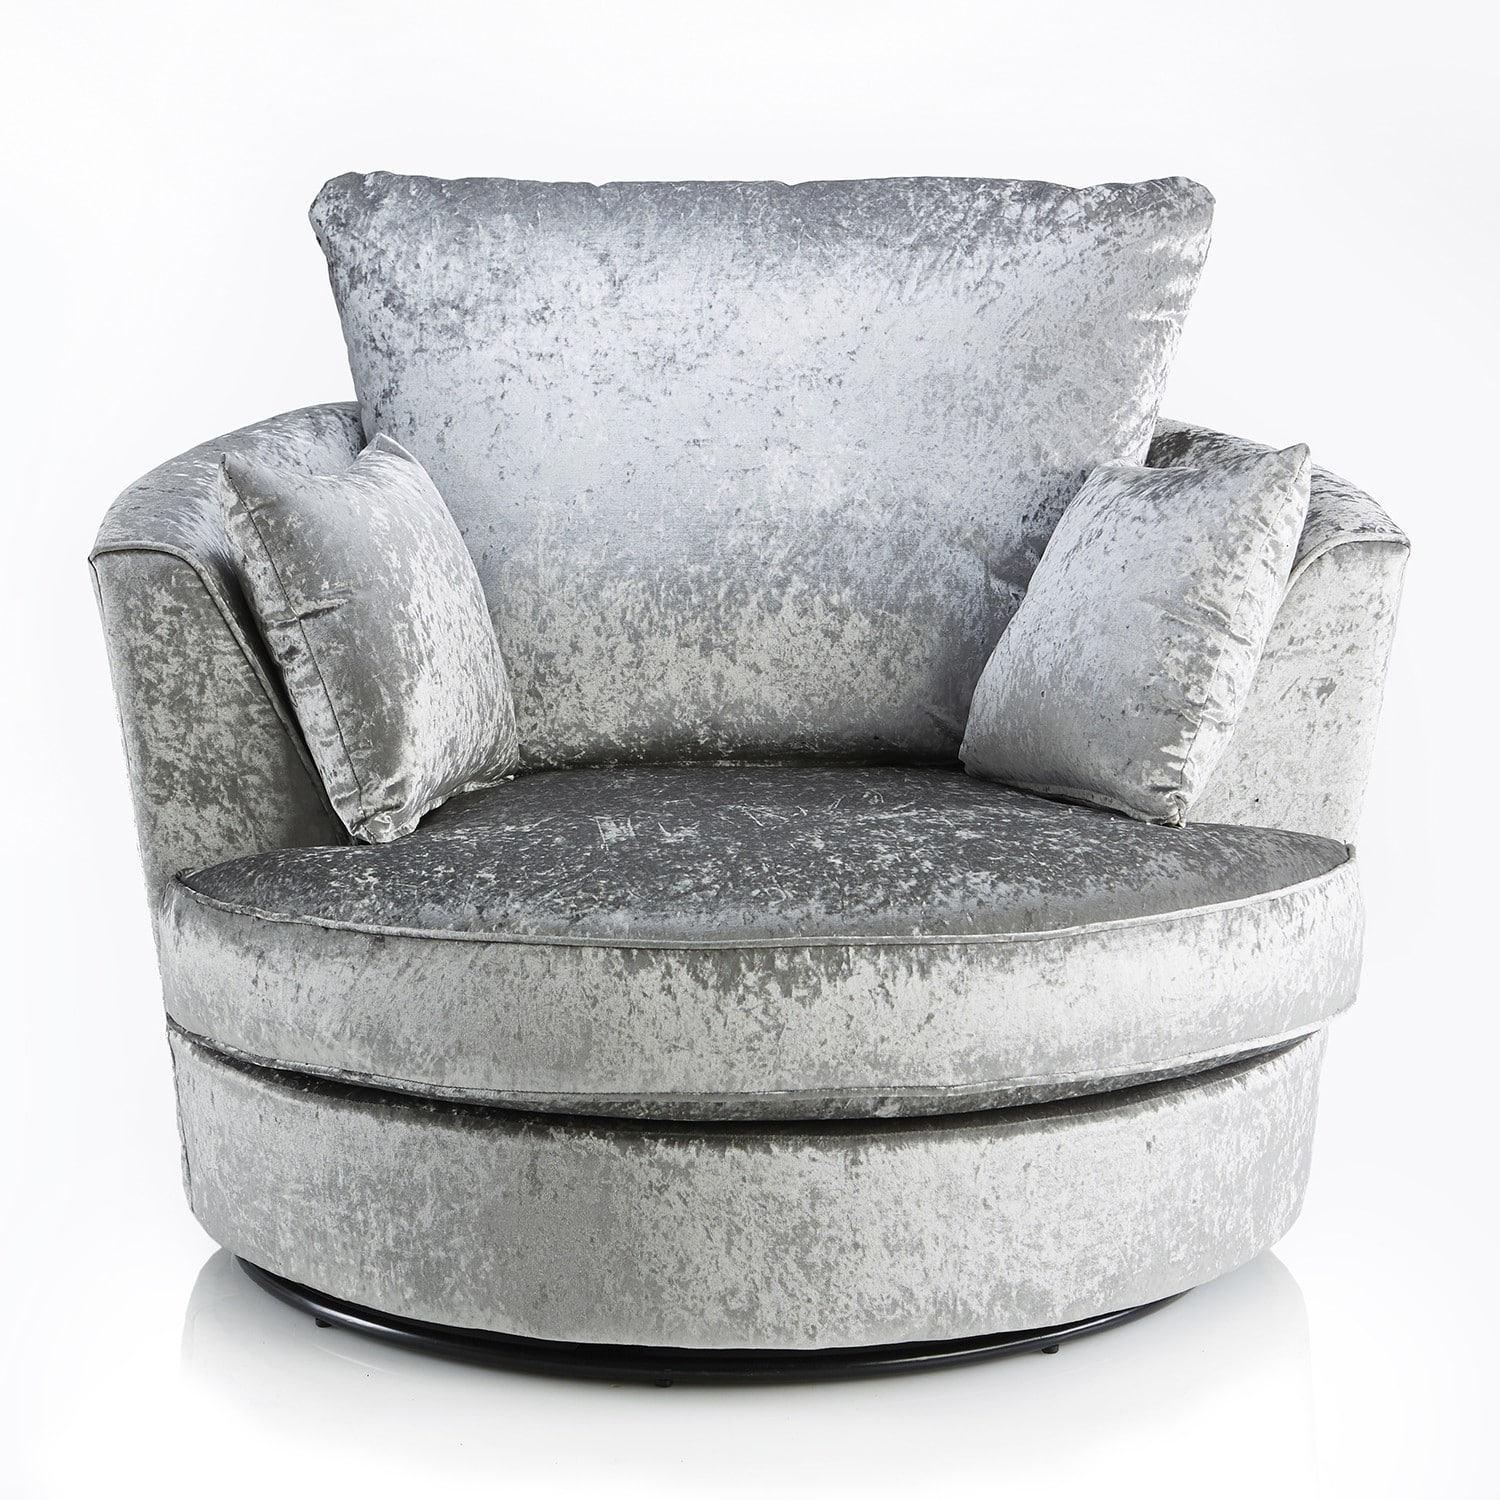 Crushed Velvet Furniture | Sofas, Beds, Chairs, Cushions Intended For Grey Swivel Chairs (Image 3 of 20)